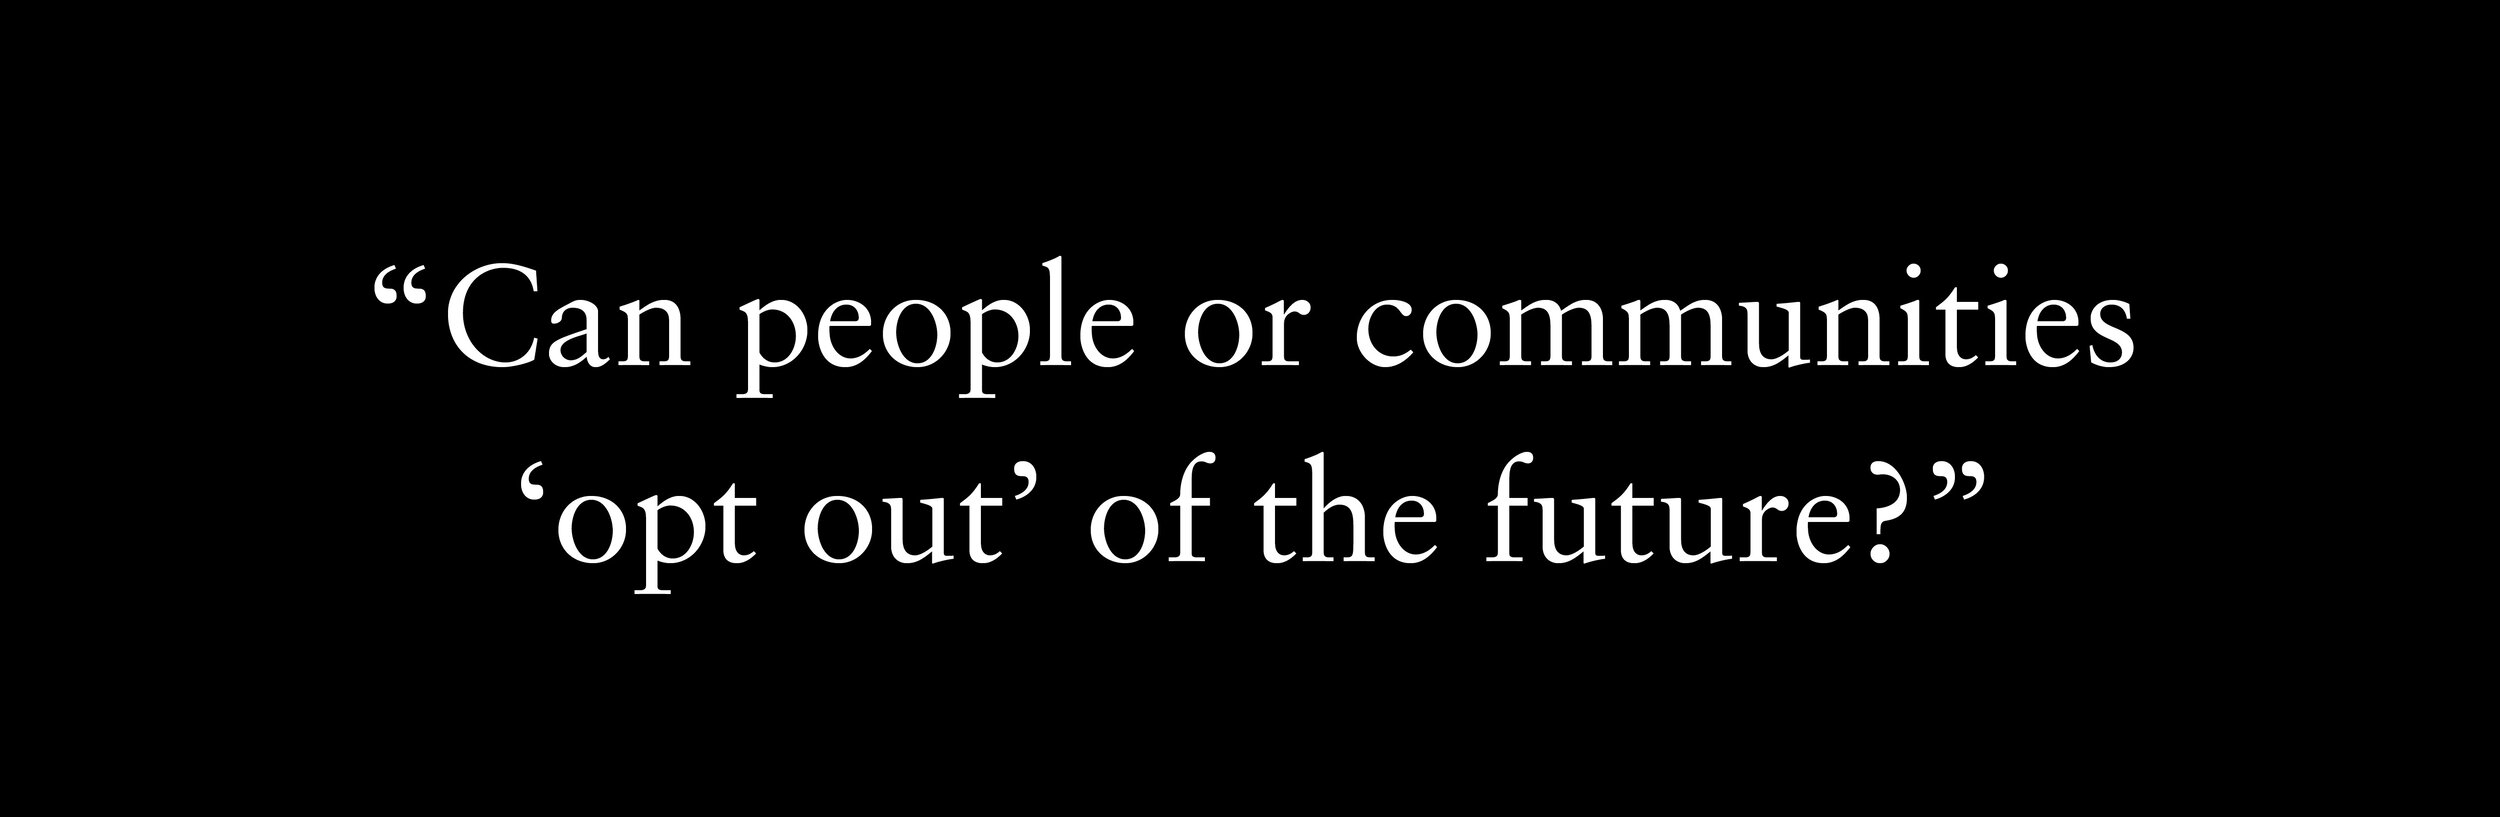 "15 - Can people or communities ""opt out"" of the future? .jpg"